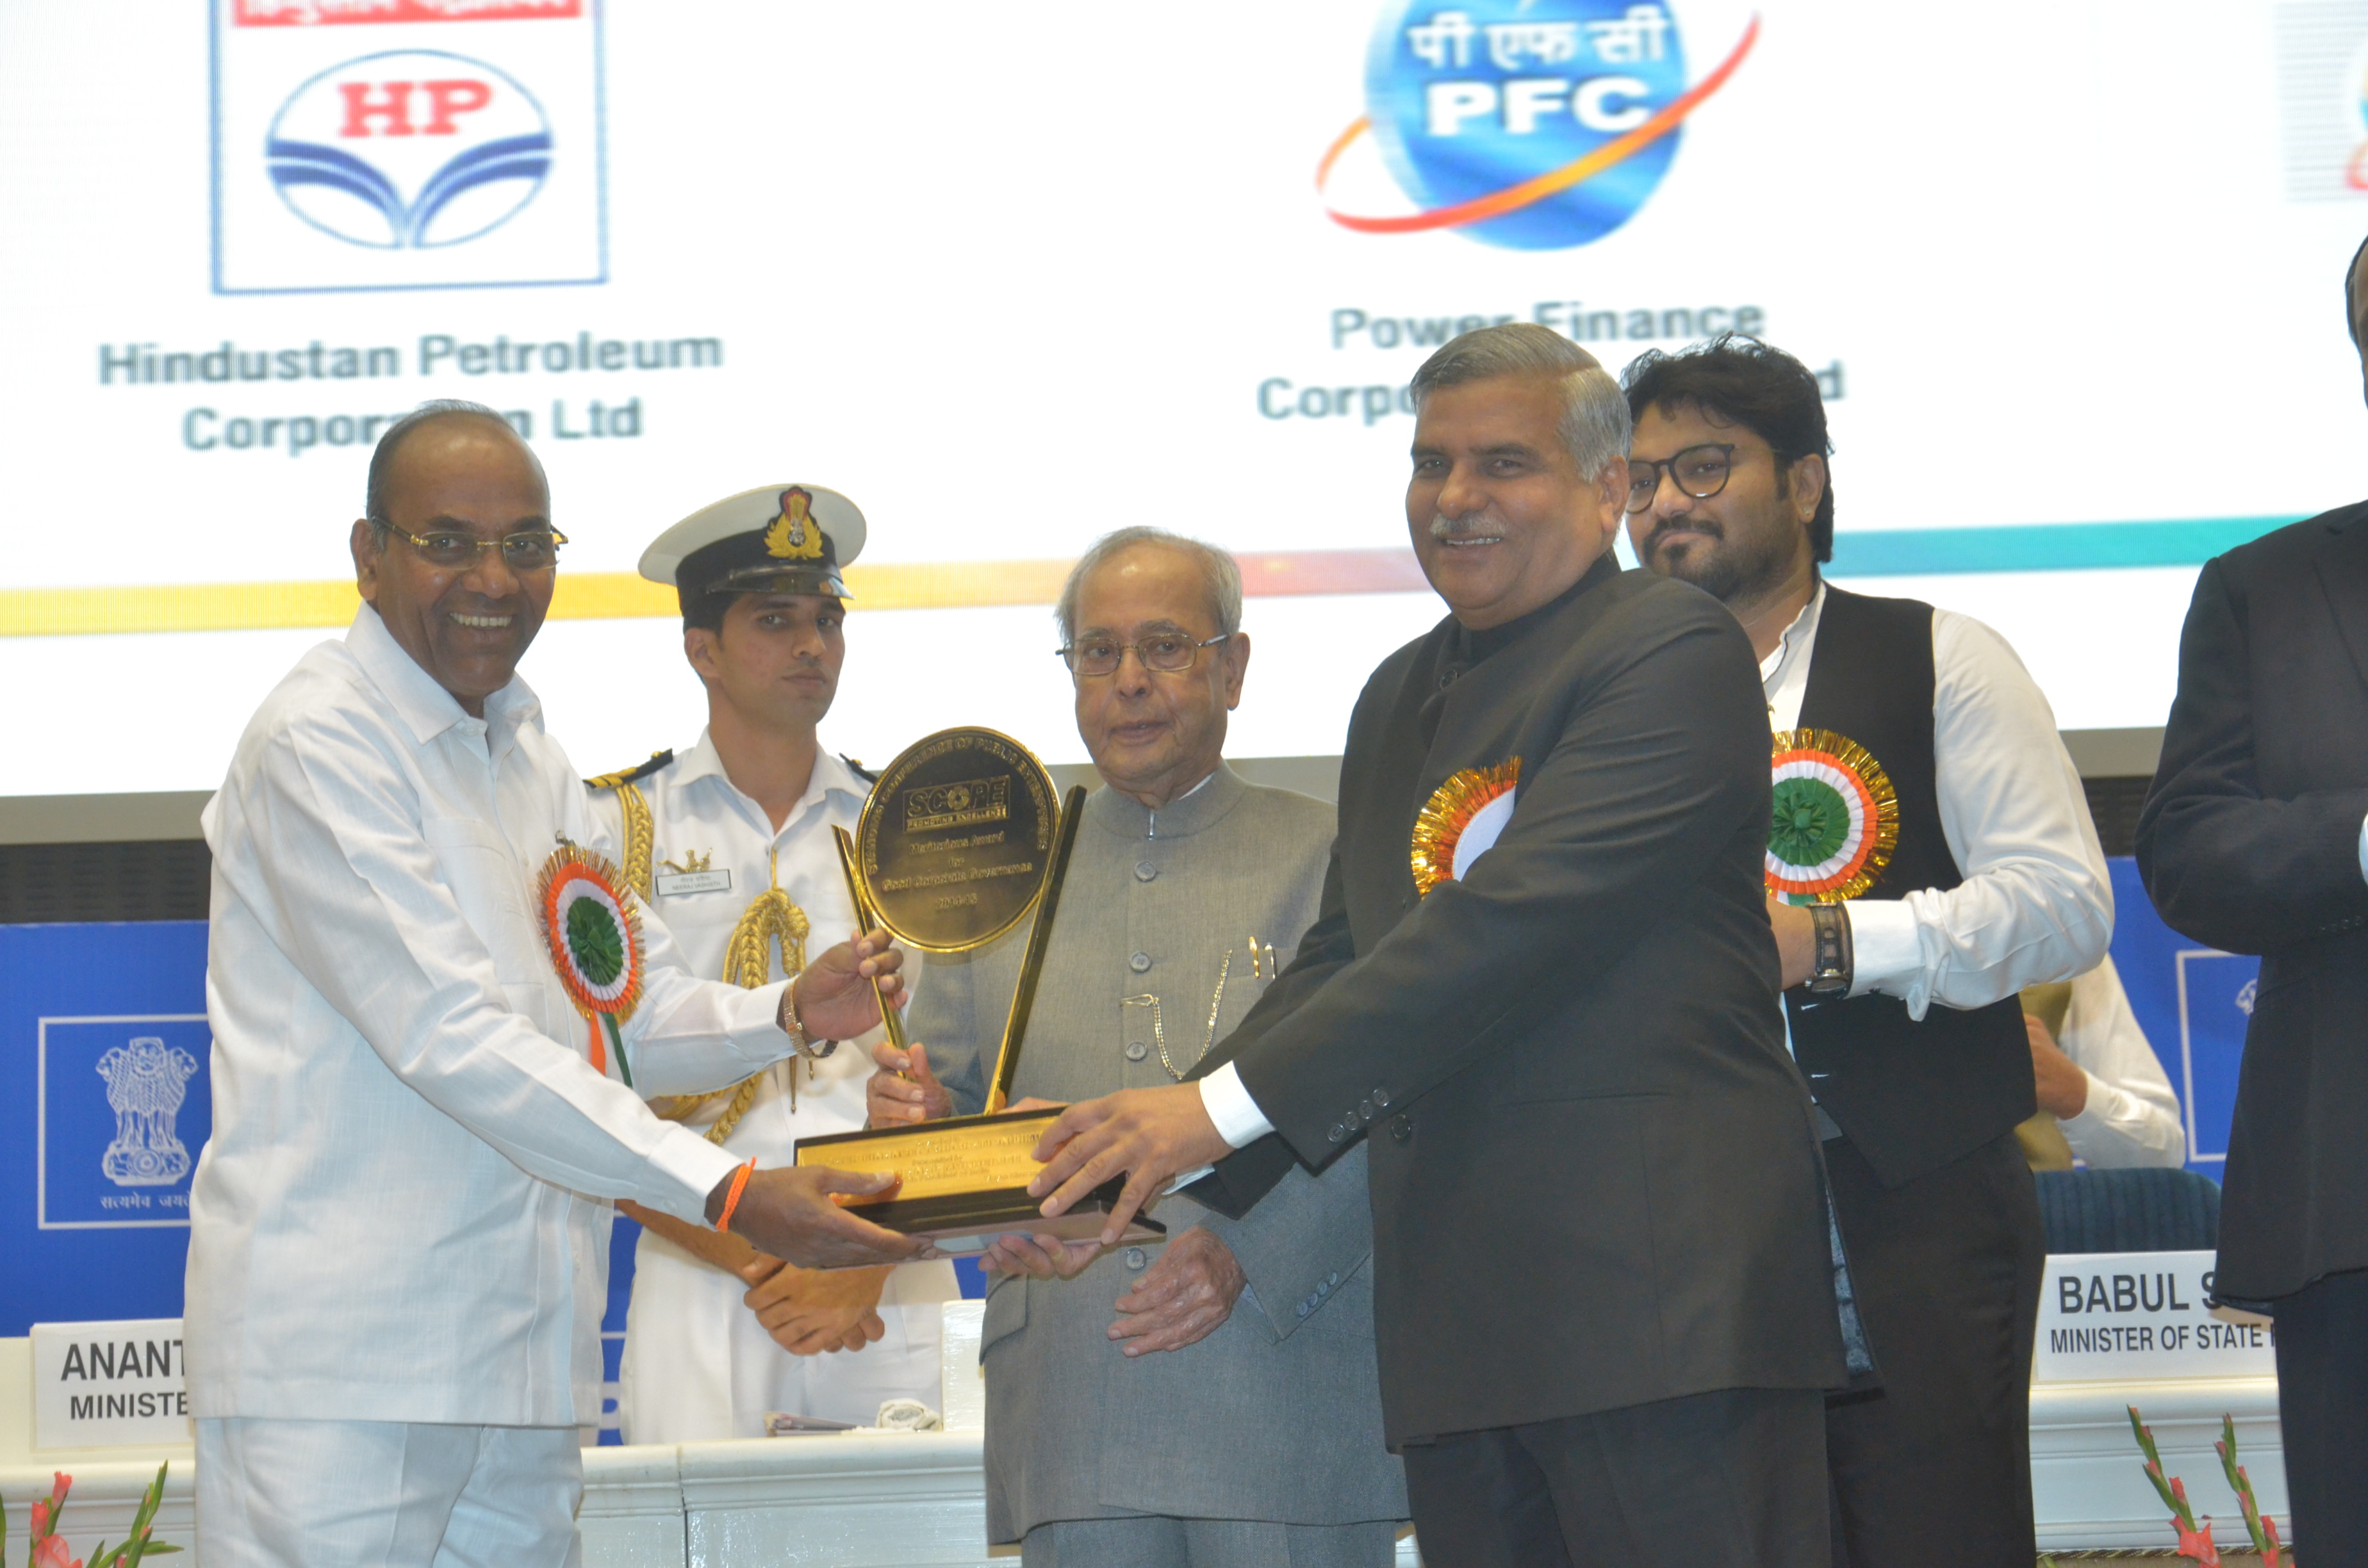 PFC received 'SCOPE Meritorious Award Gold Trophy for Good Corporate Governance for the year 2014-15